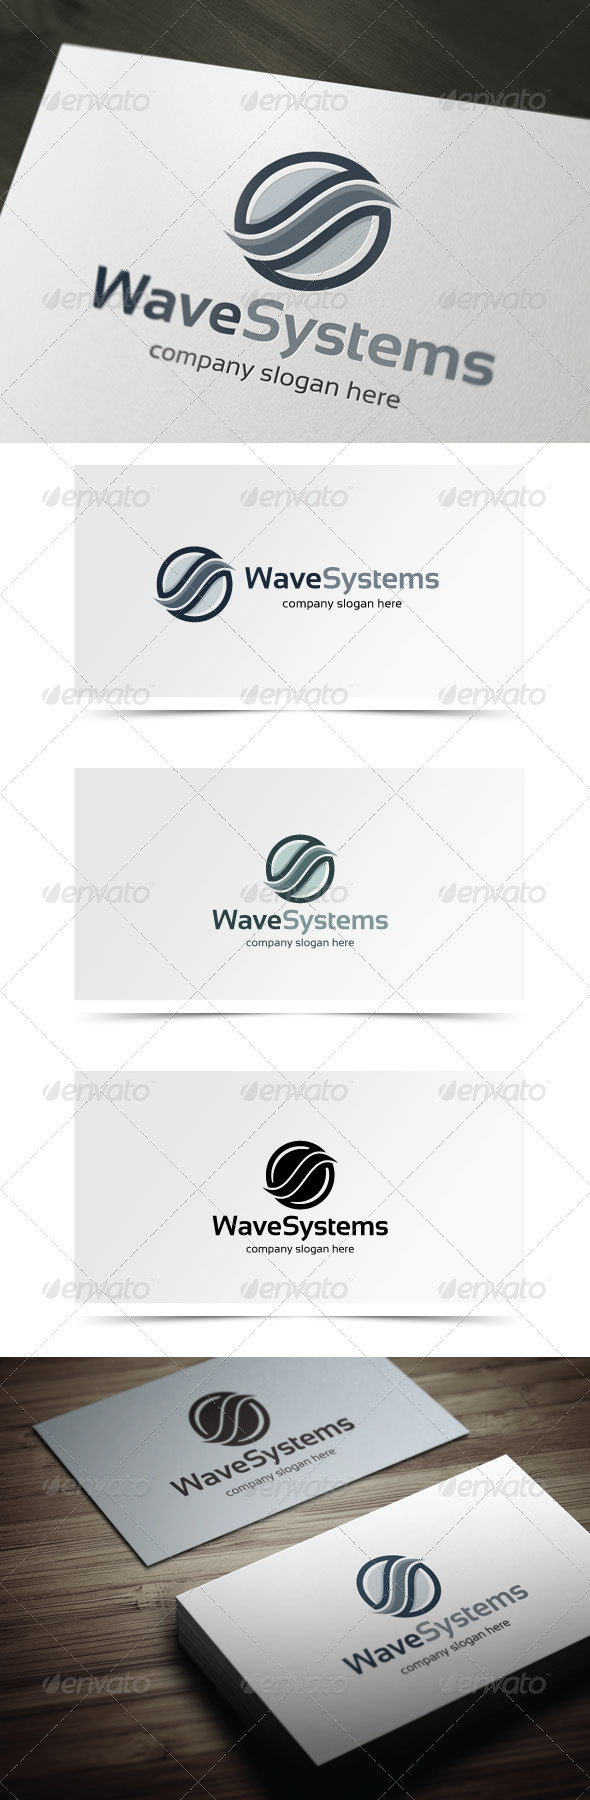 Wave Systems - Abstract Logo Templates